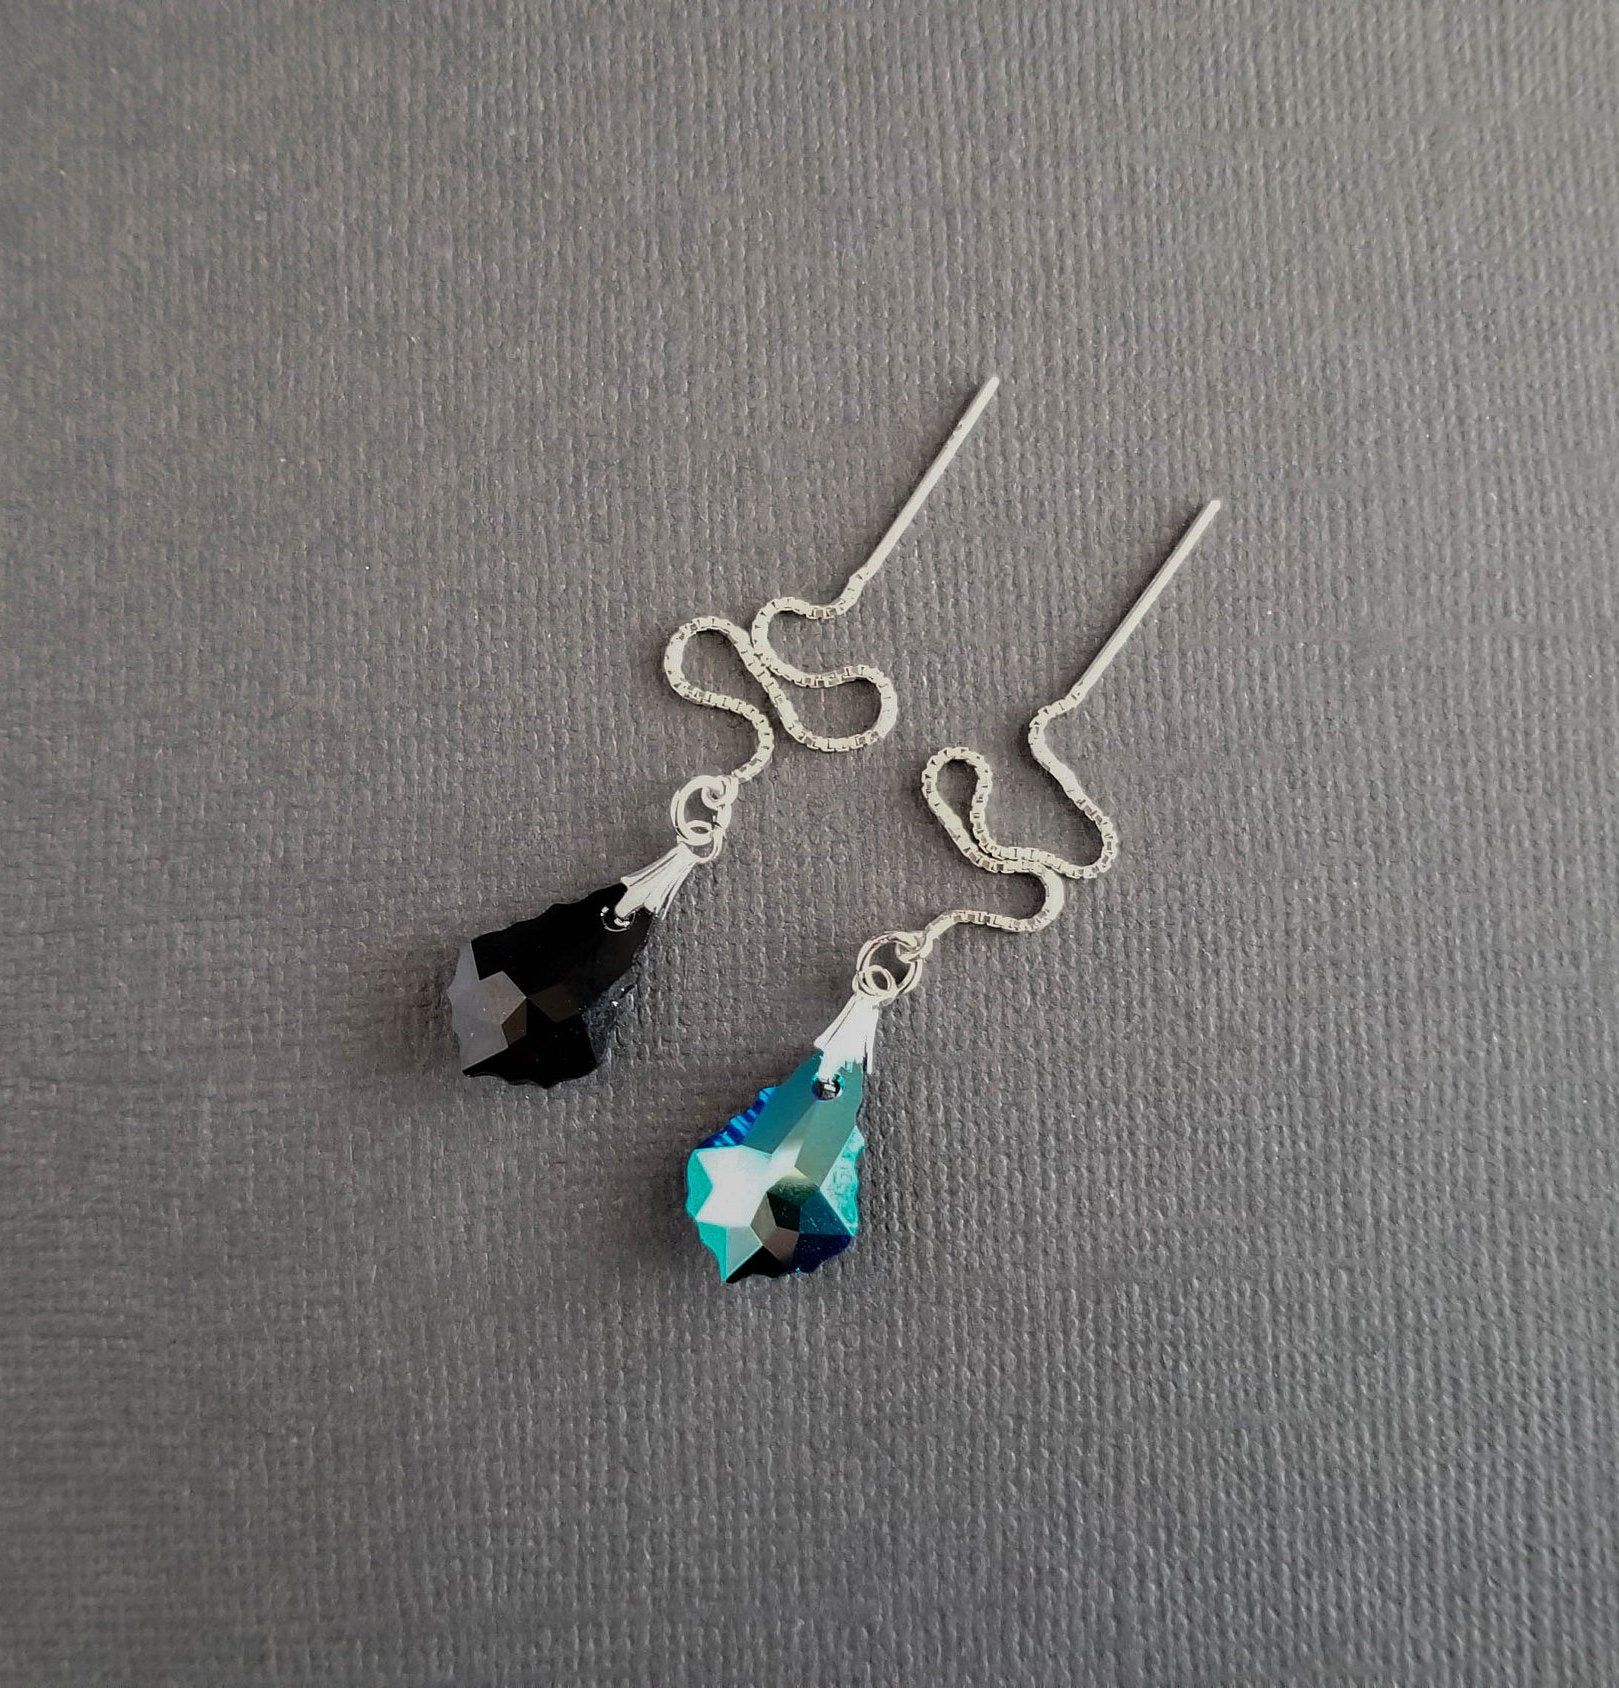 Double sided reversible gemstone crystal necklace 2 necklaces in one!